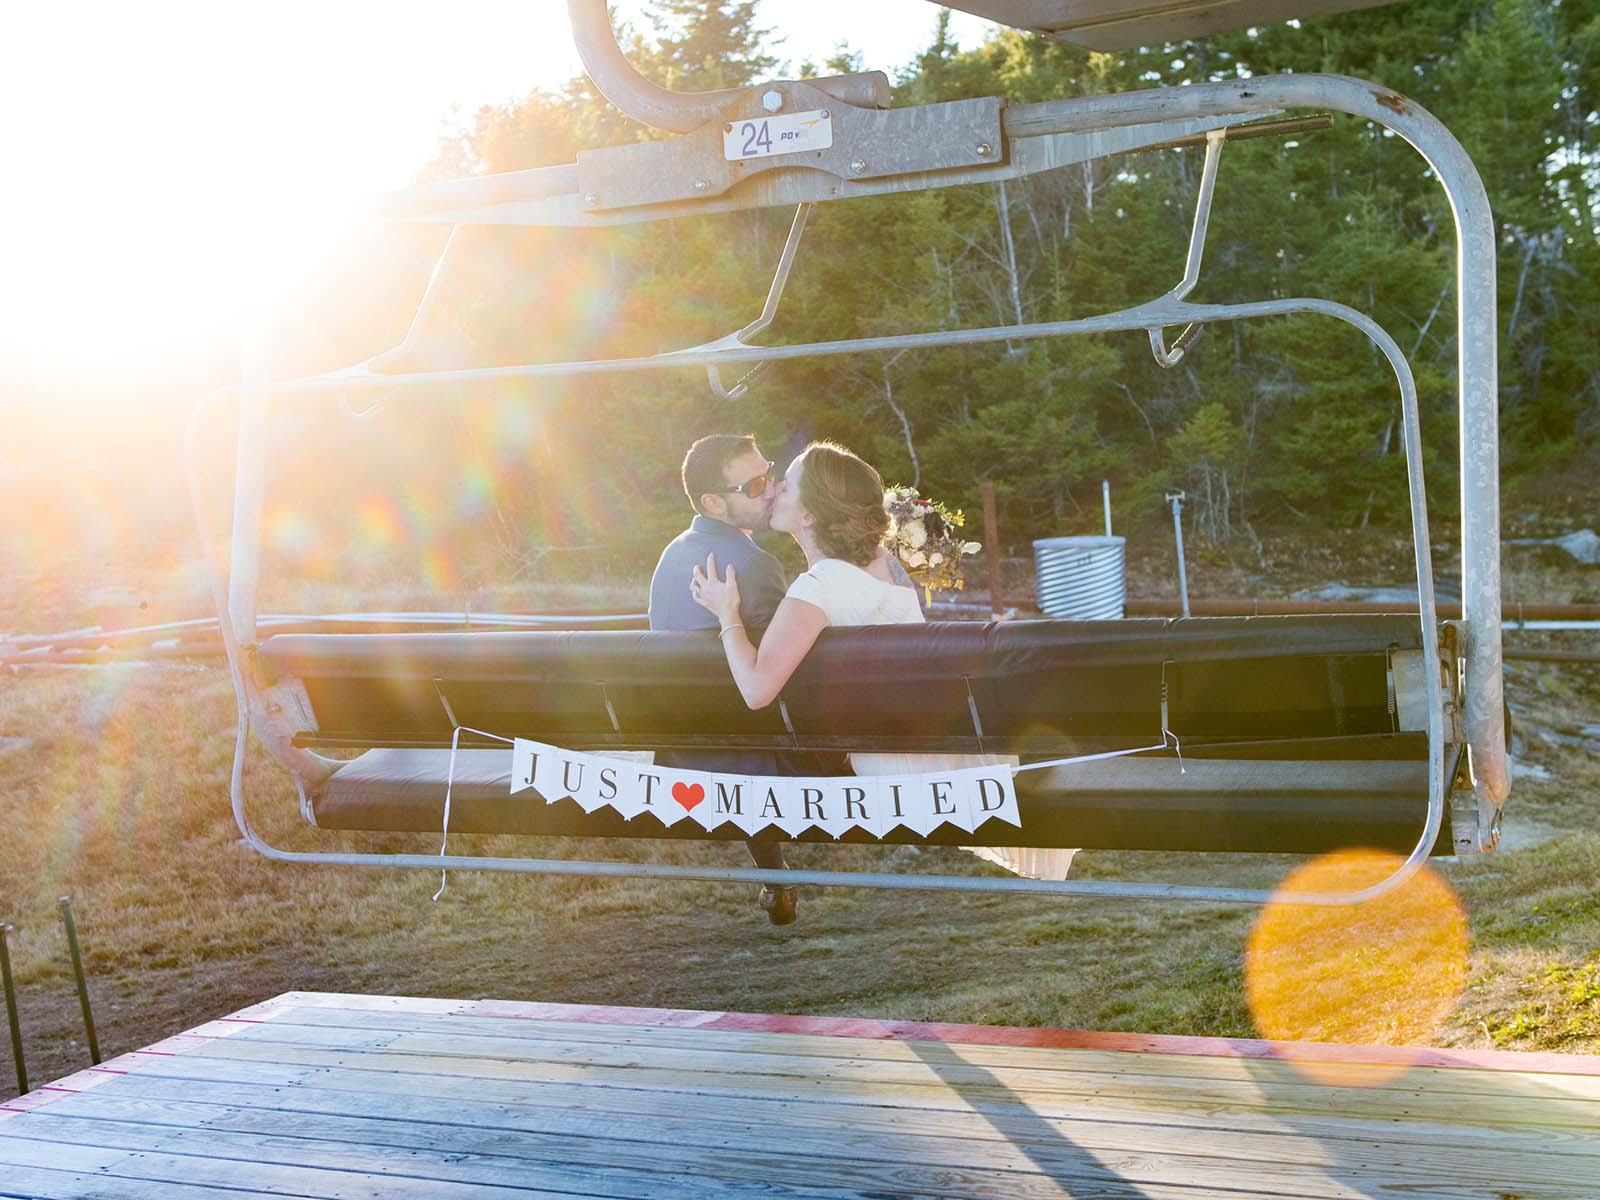 A bride and groom boarding the chairlift.